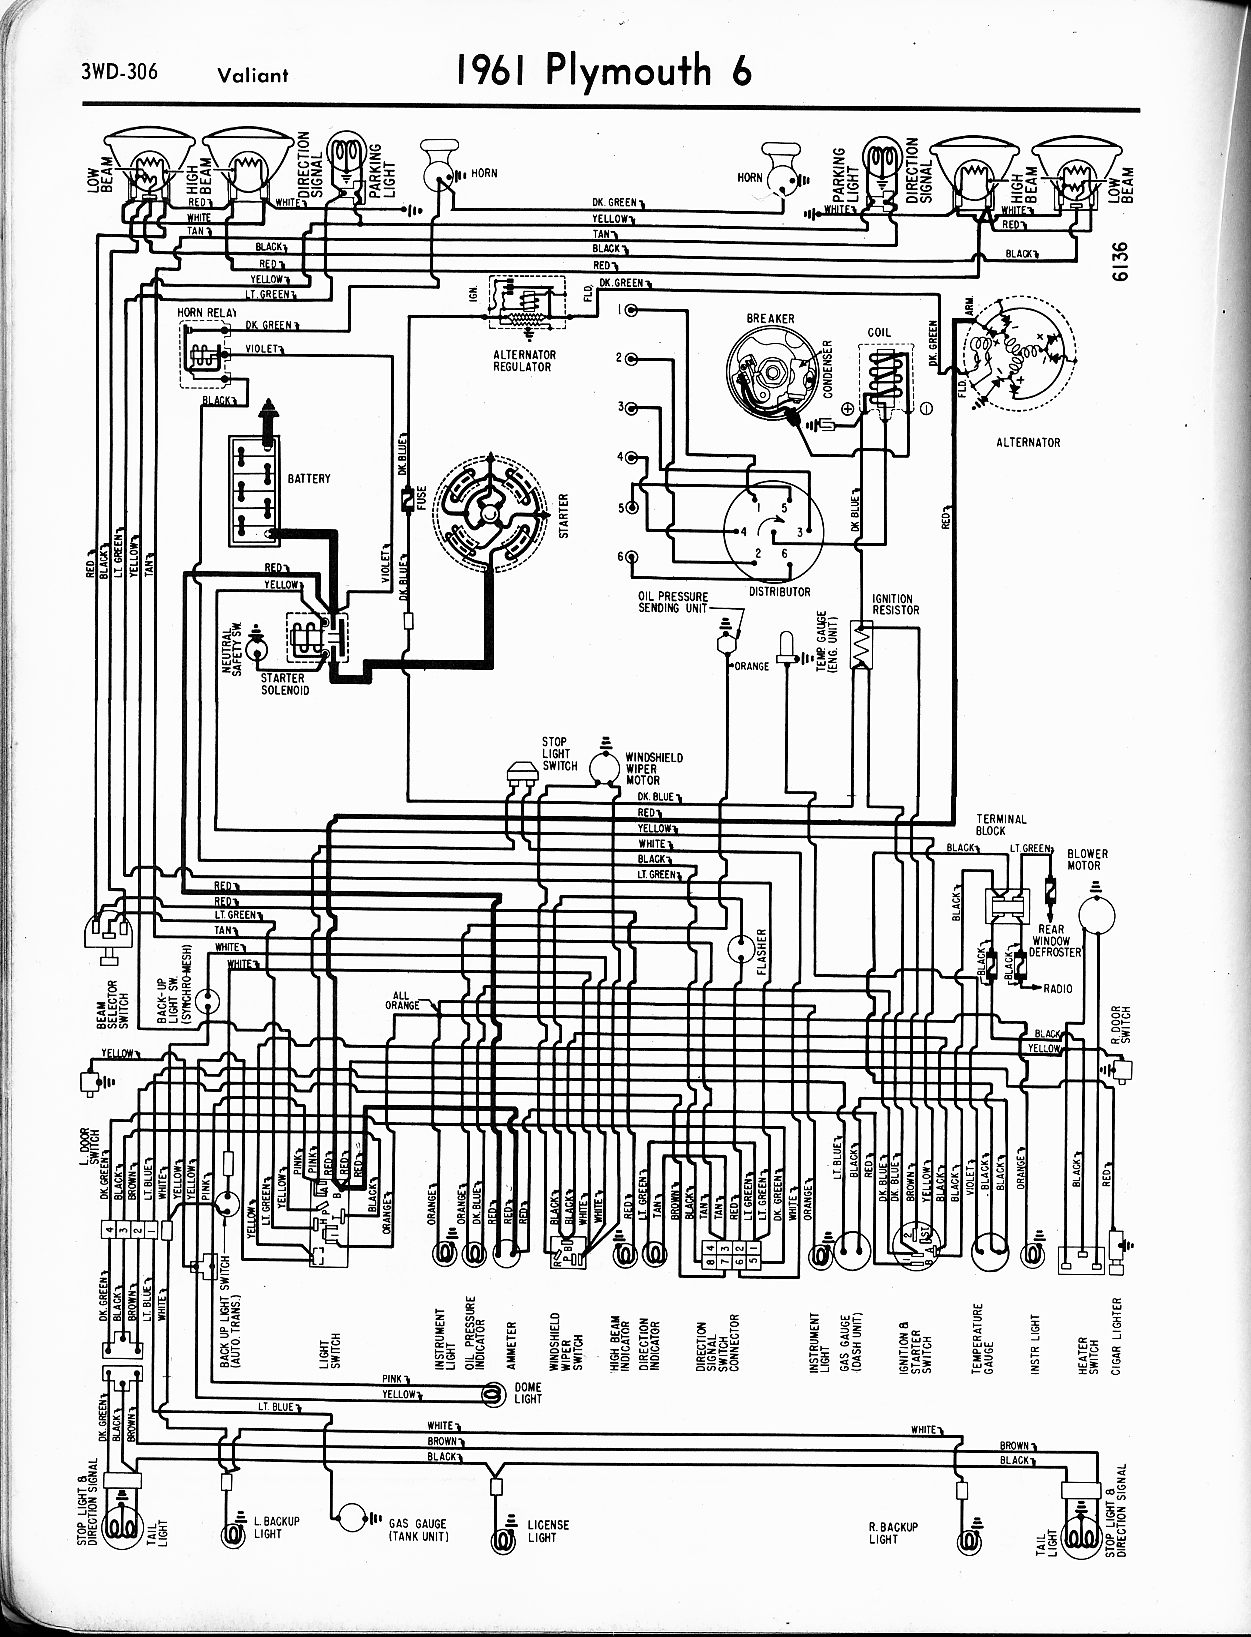 wiring diagram for 1965 plymouth valiant use wiring diagram 68 plymouth wiring diagram [ 1251 x 1637 Pixel ]